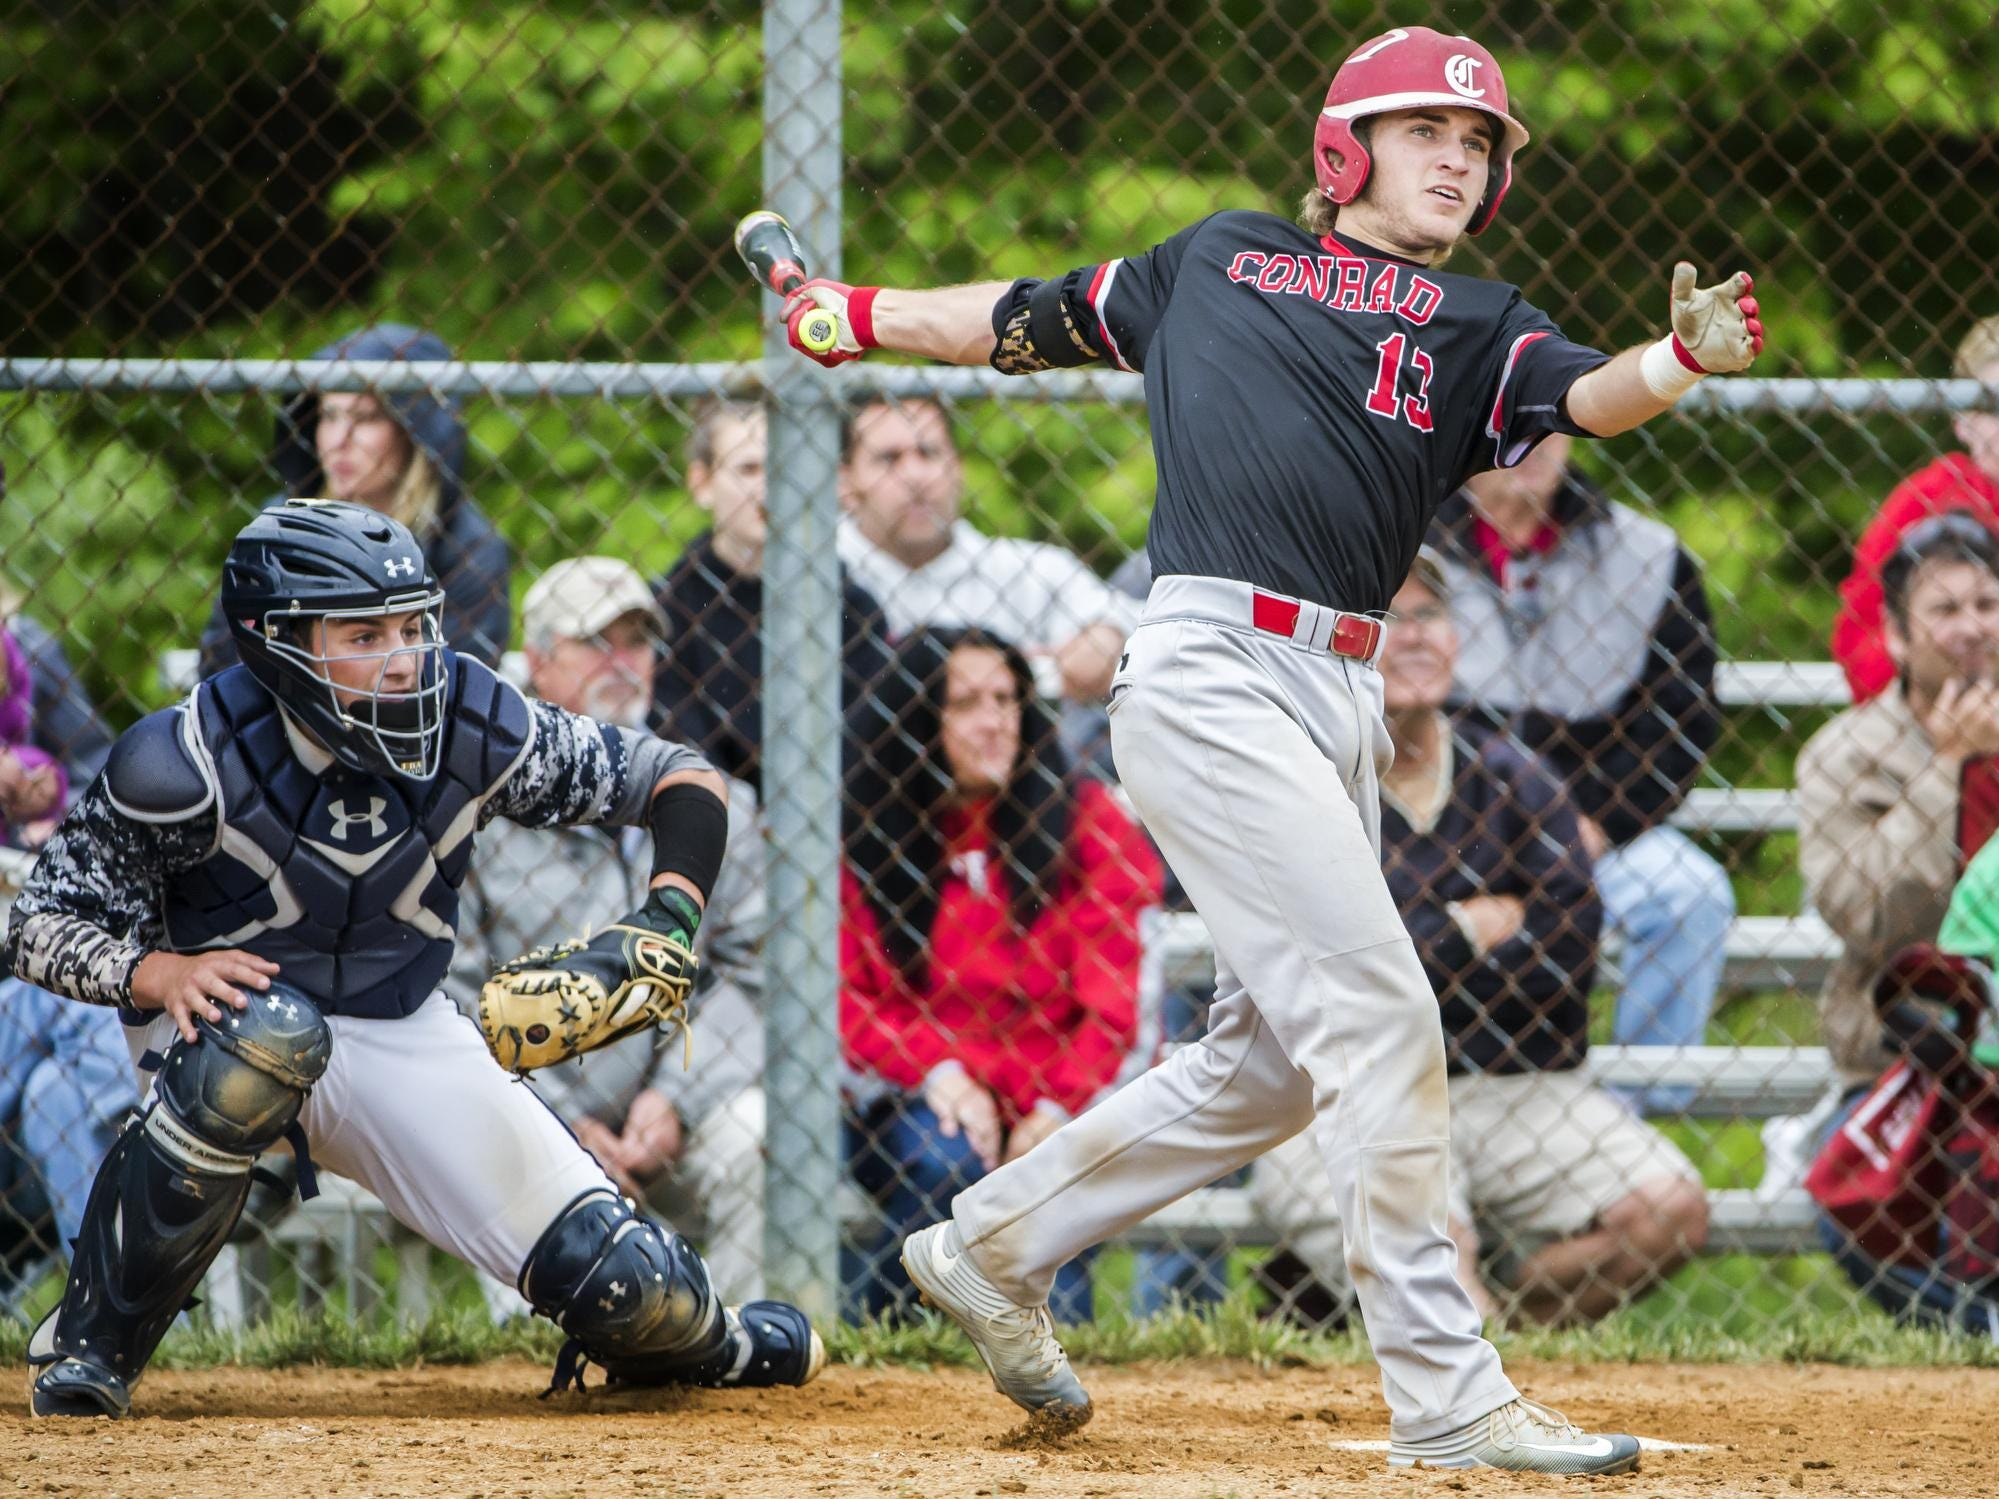 Conrad's Brock Nowell watches as his home run leaves the field in the fourth inning of Conrad's 1-0 win over Delaware Military Academy in Newark on Tuesday afternoon.